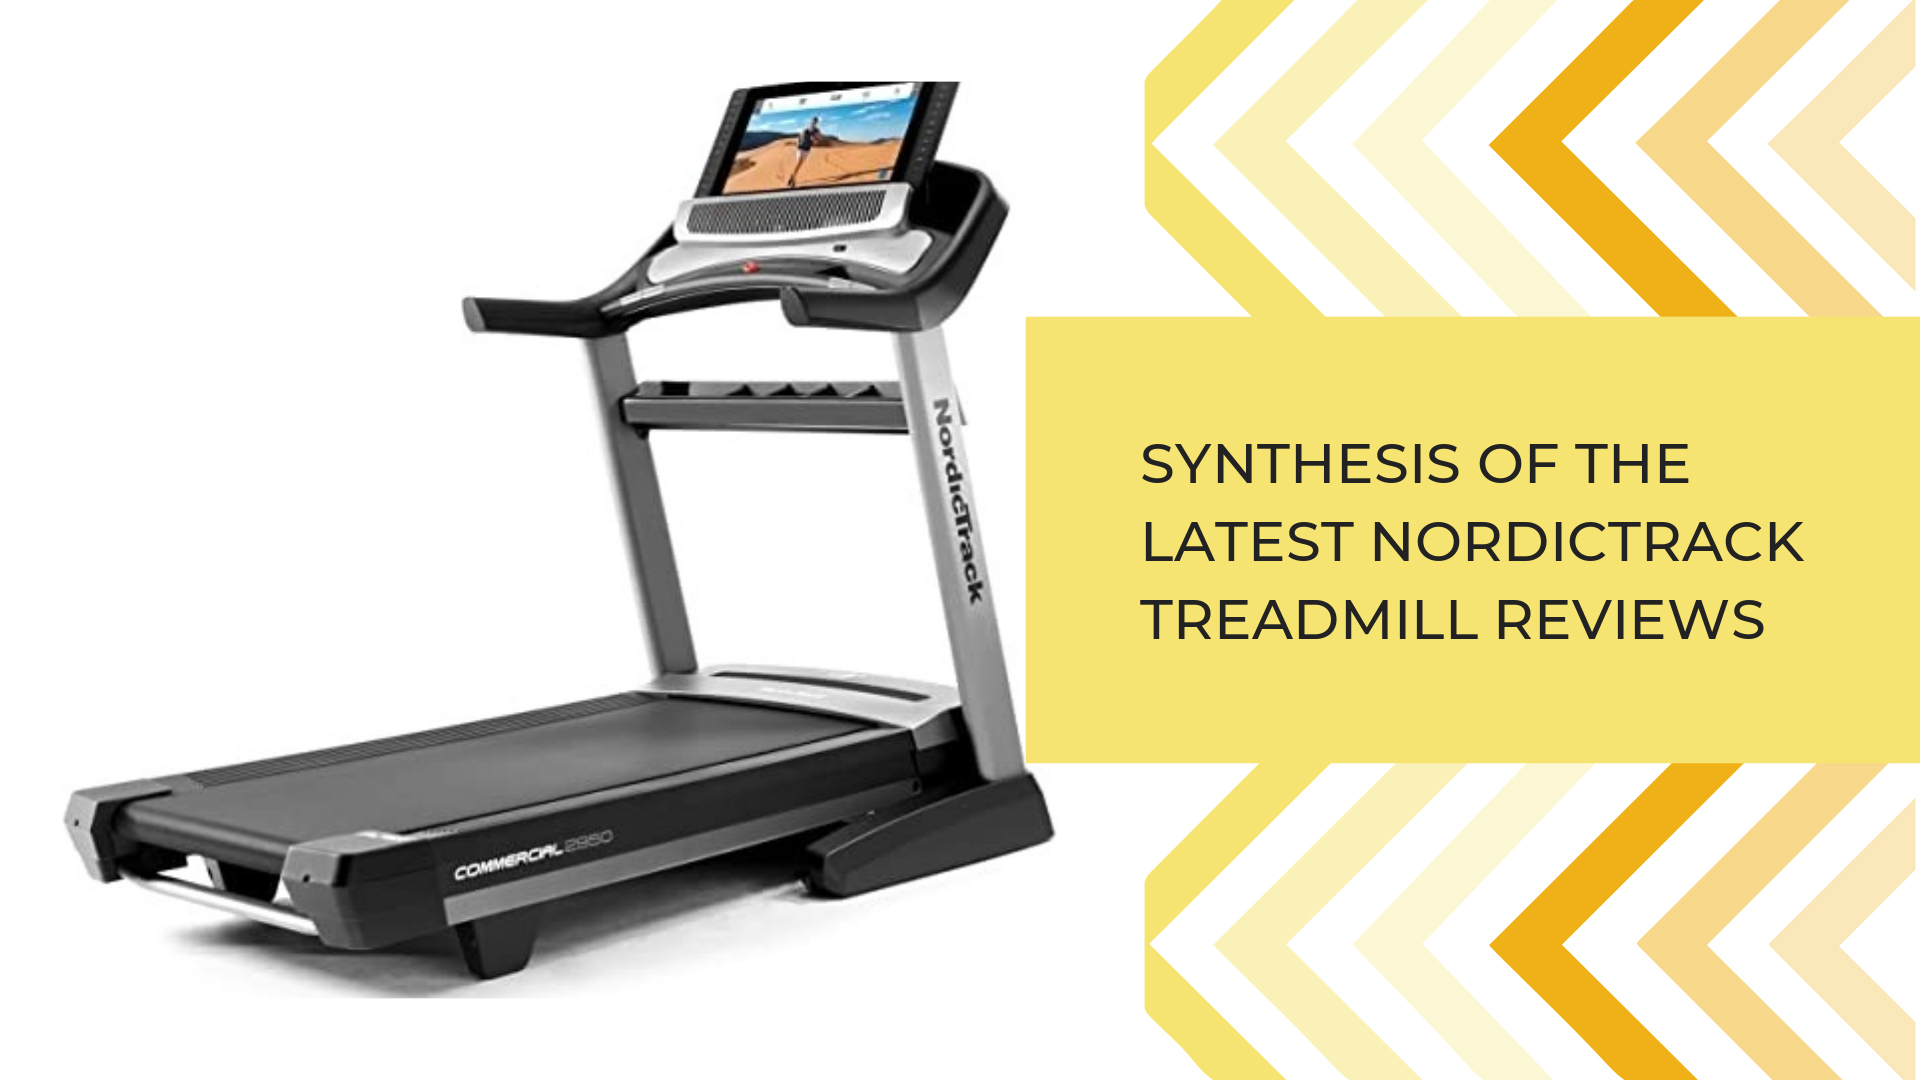 Synthesis Of The Latest NordicTrack Treadmill Reviews